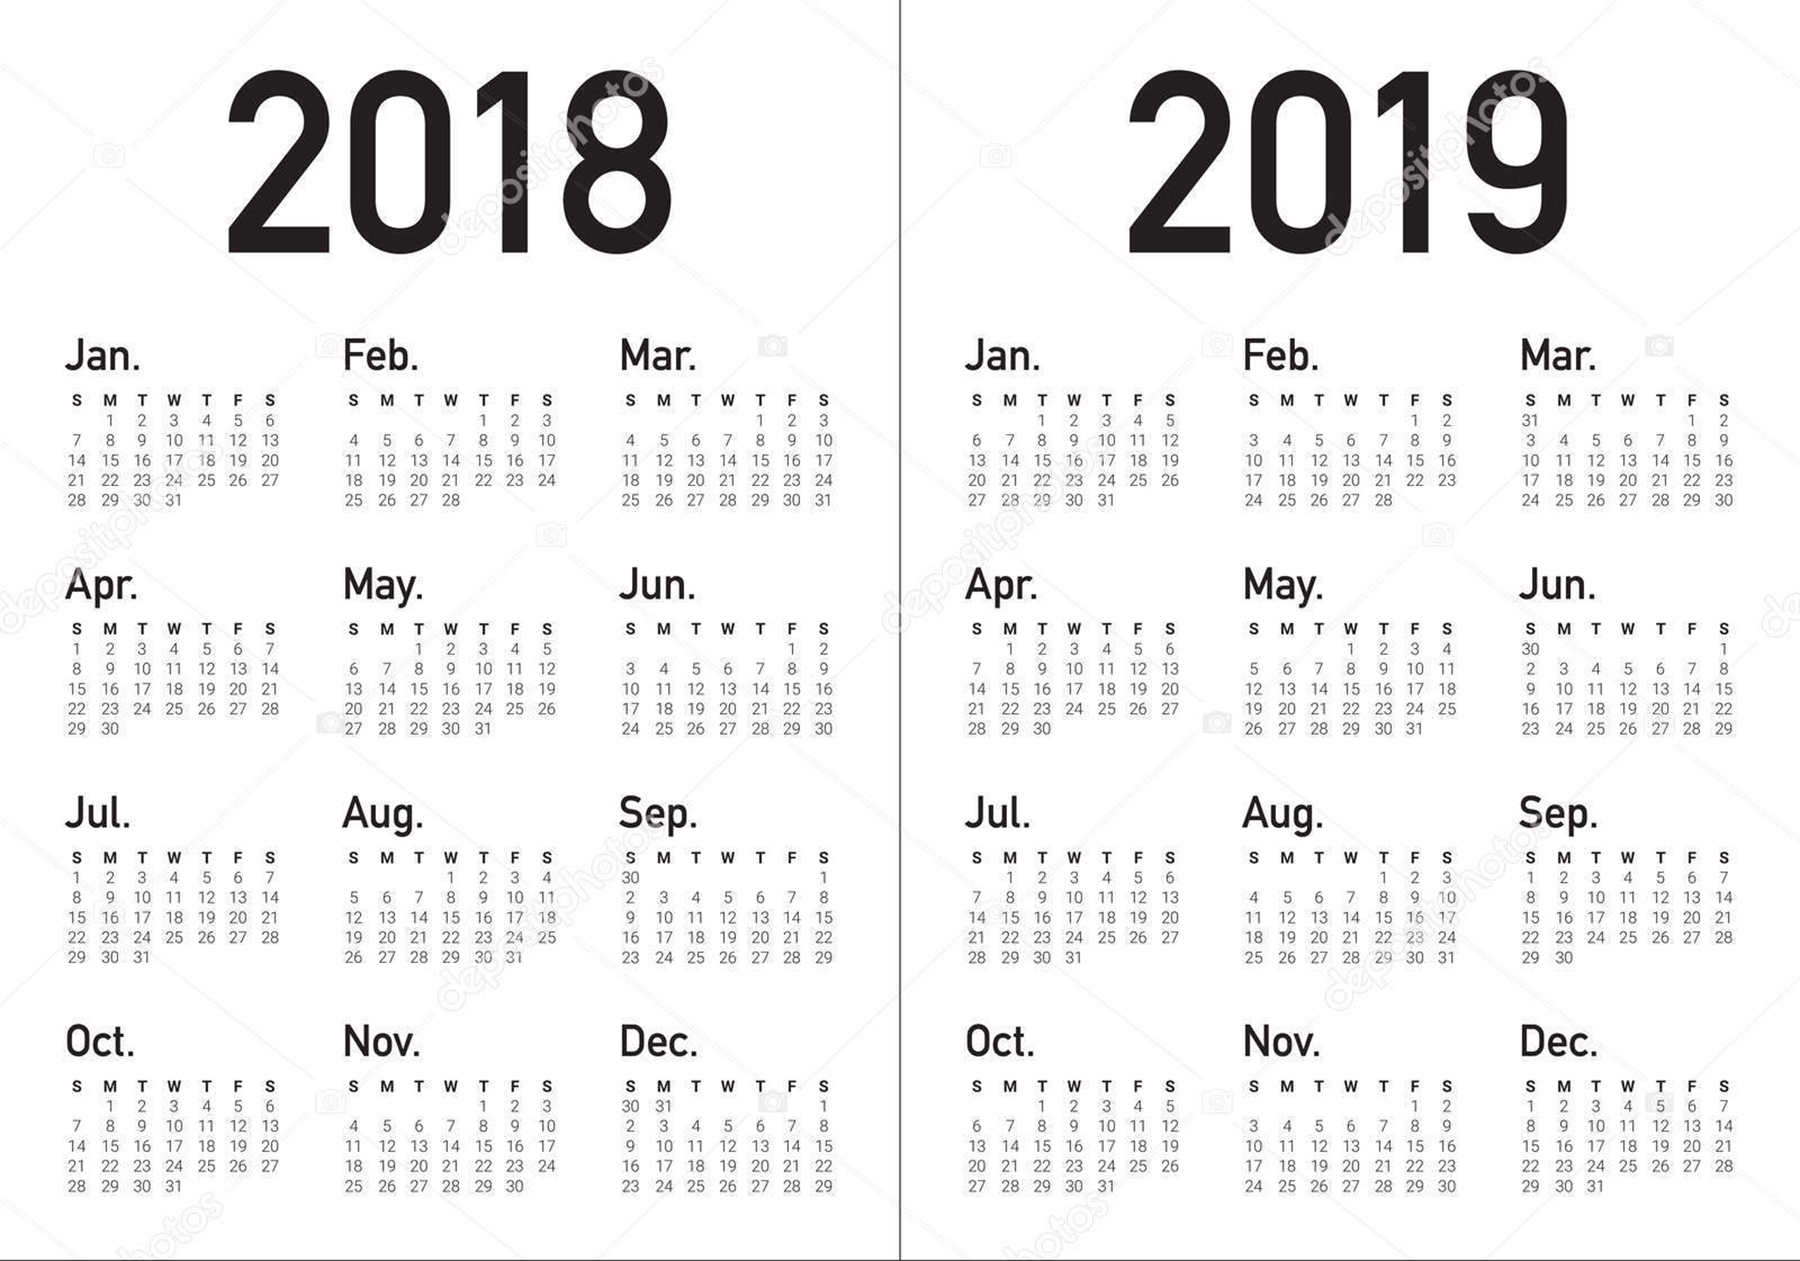 2018 And 2019 Two Year Calendars - Printable Monthly Calendar